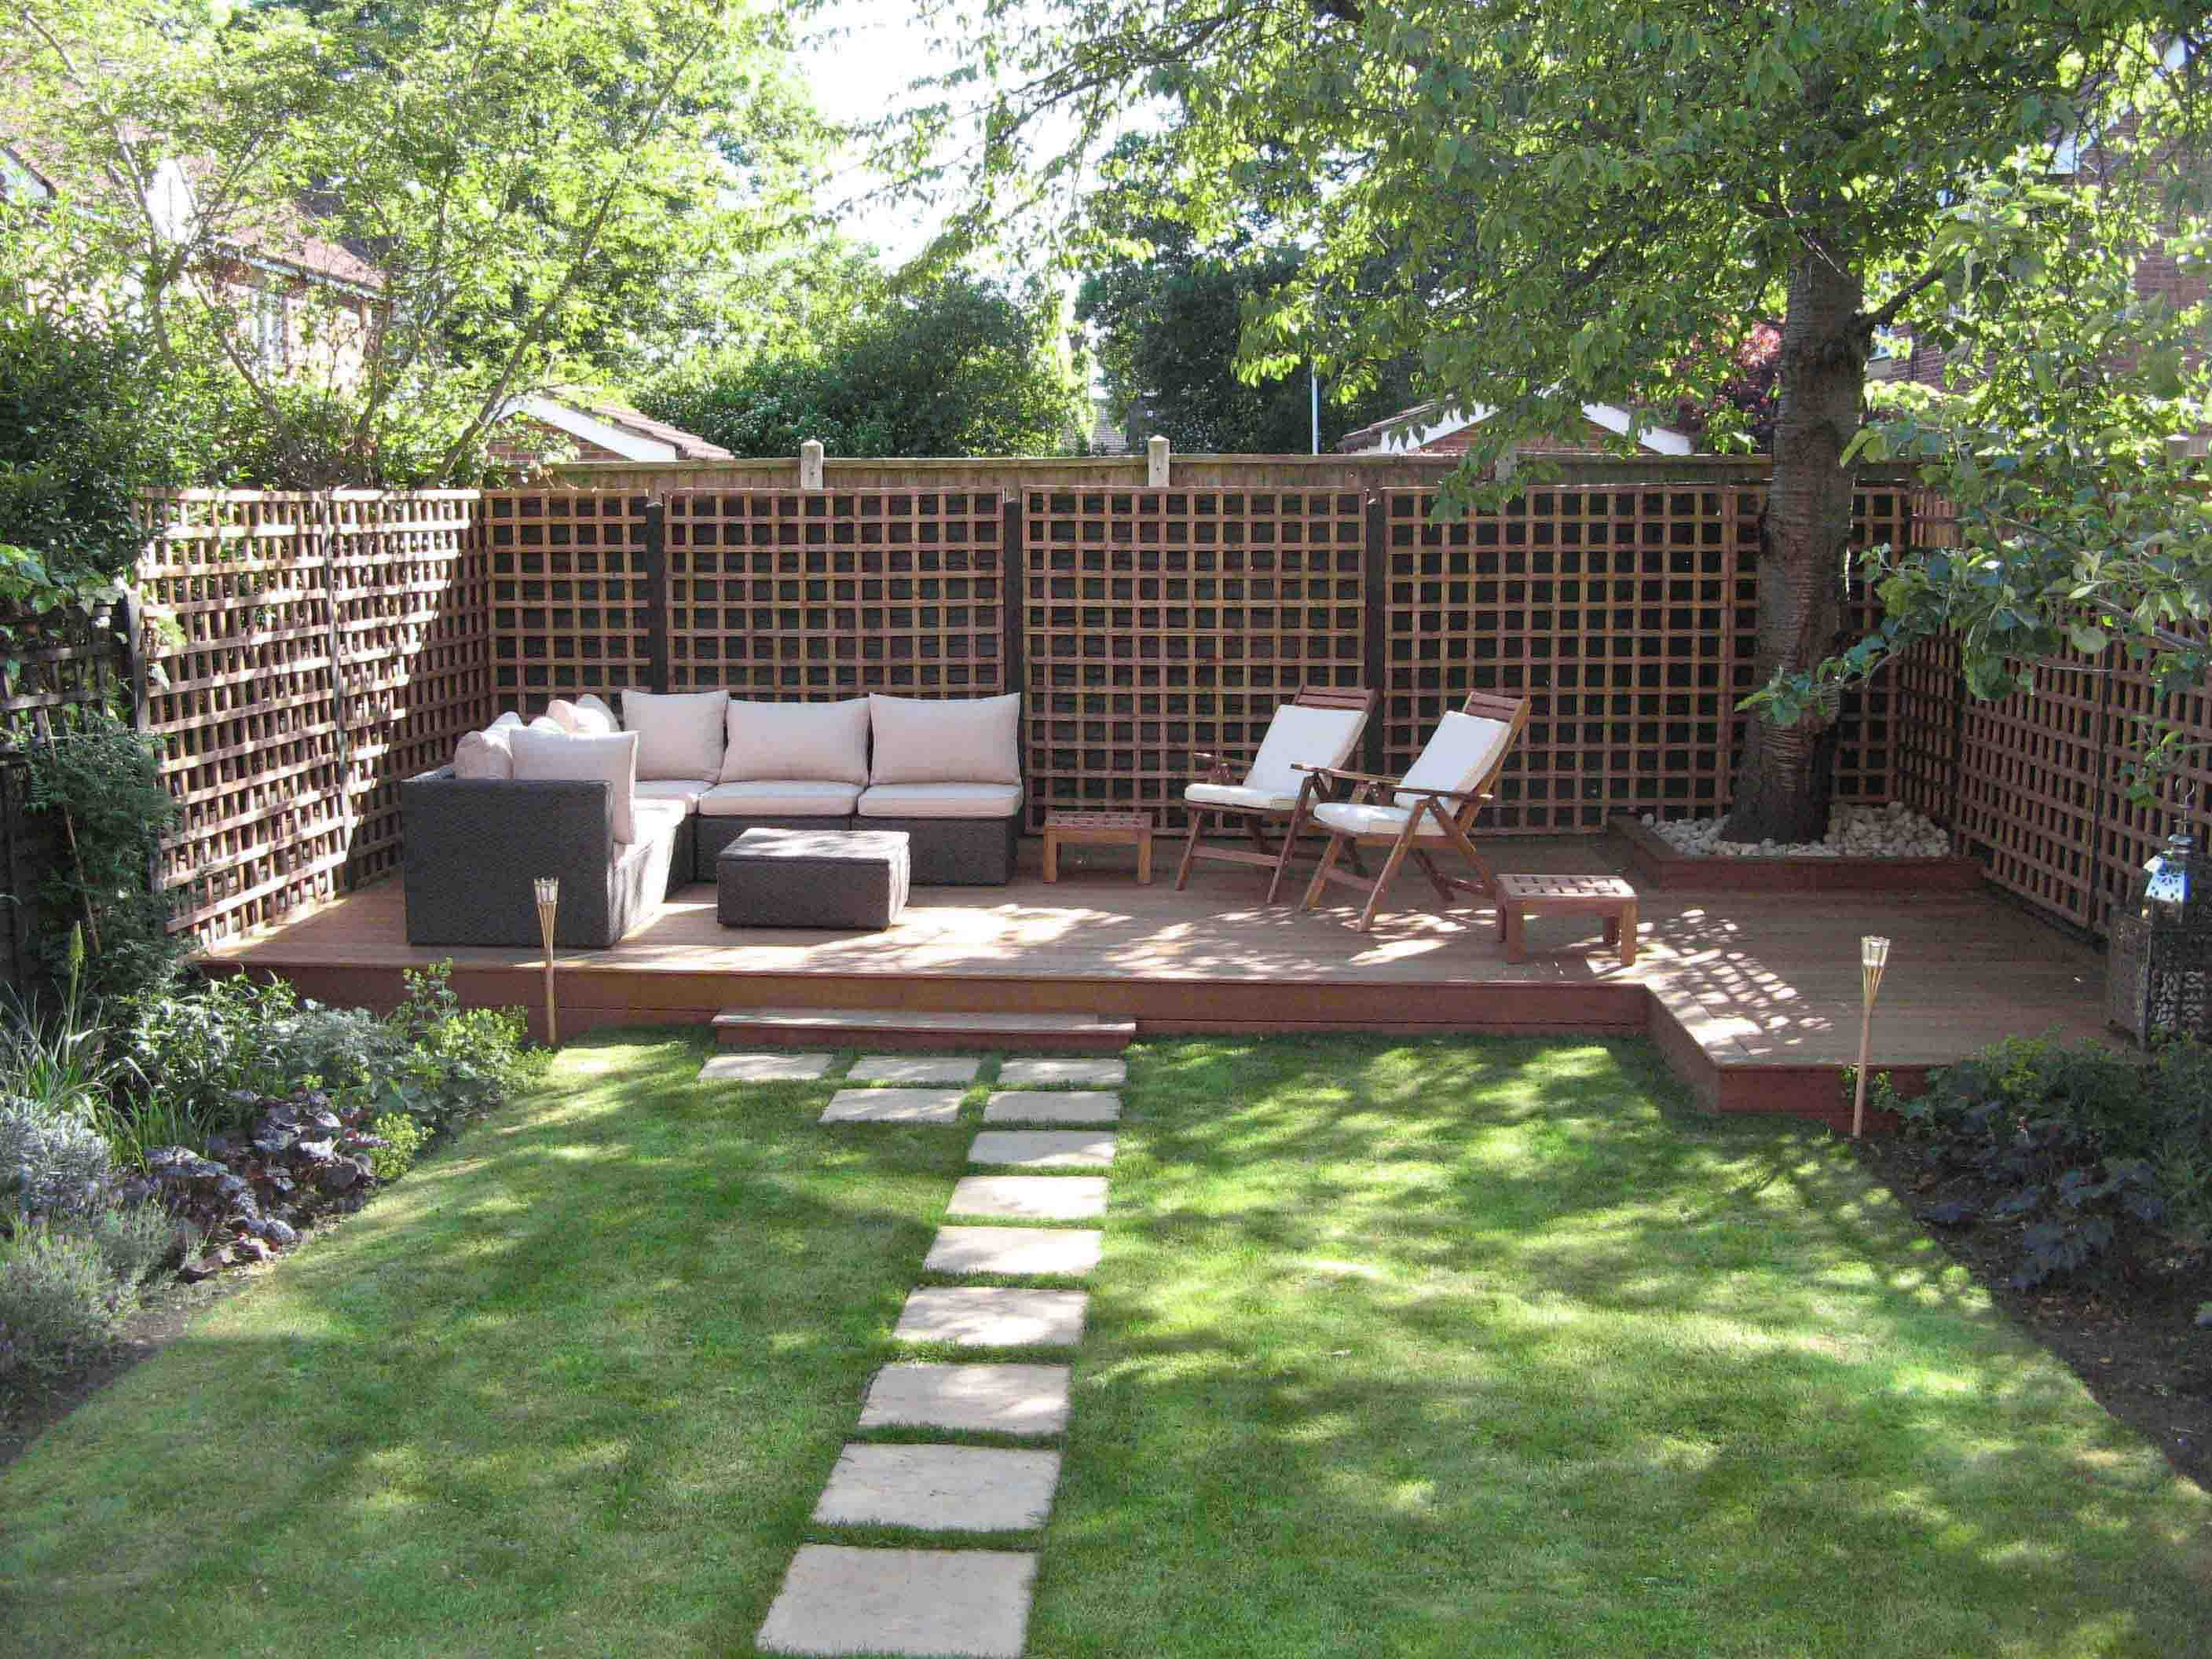 Cozy Wicker Sectional Sofa and Oak Chairs Placed on Wooden Deck in Small Garden Ideas